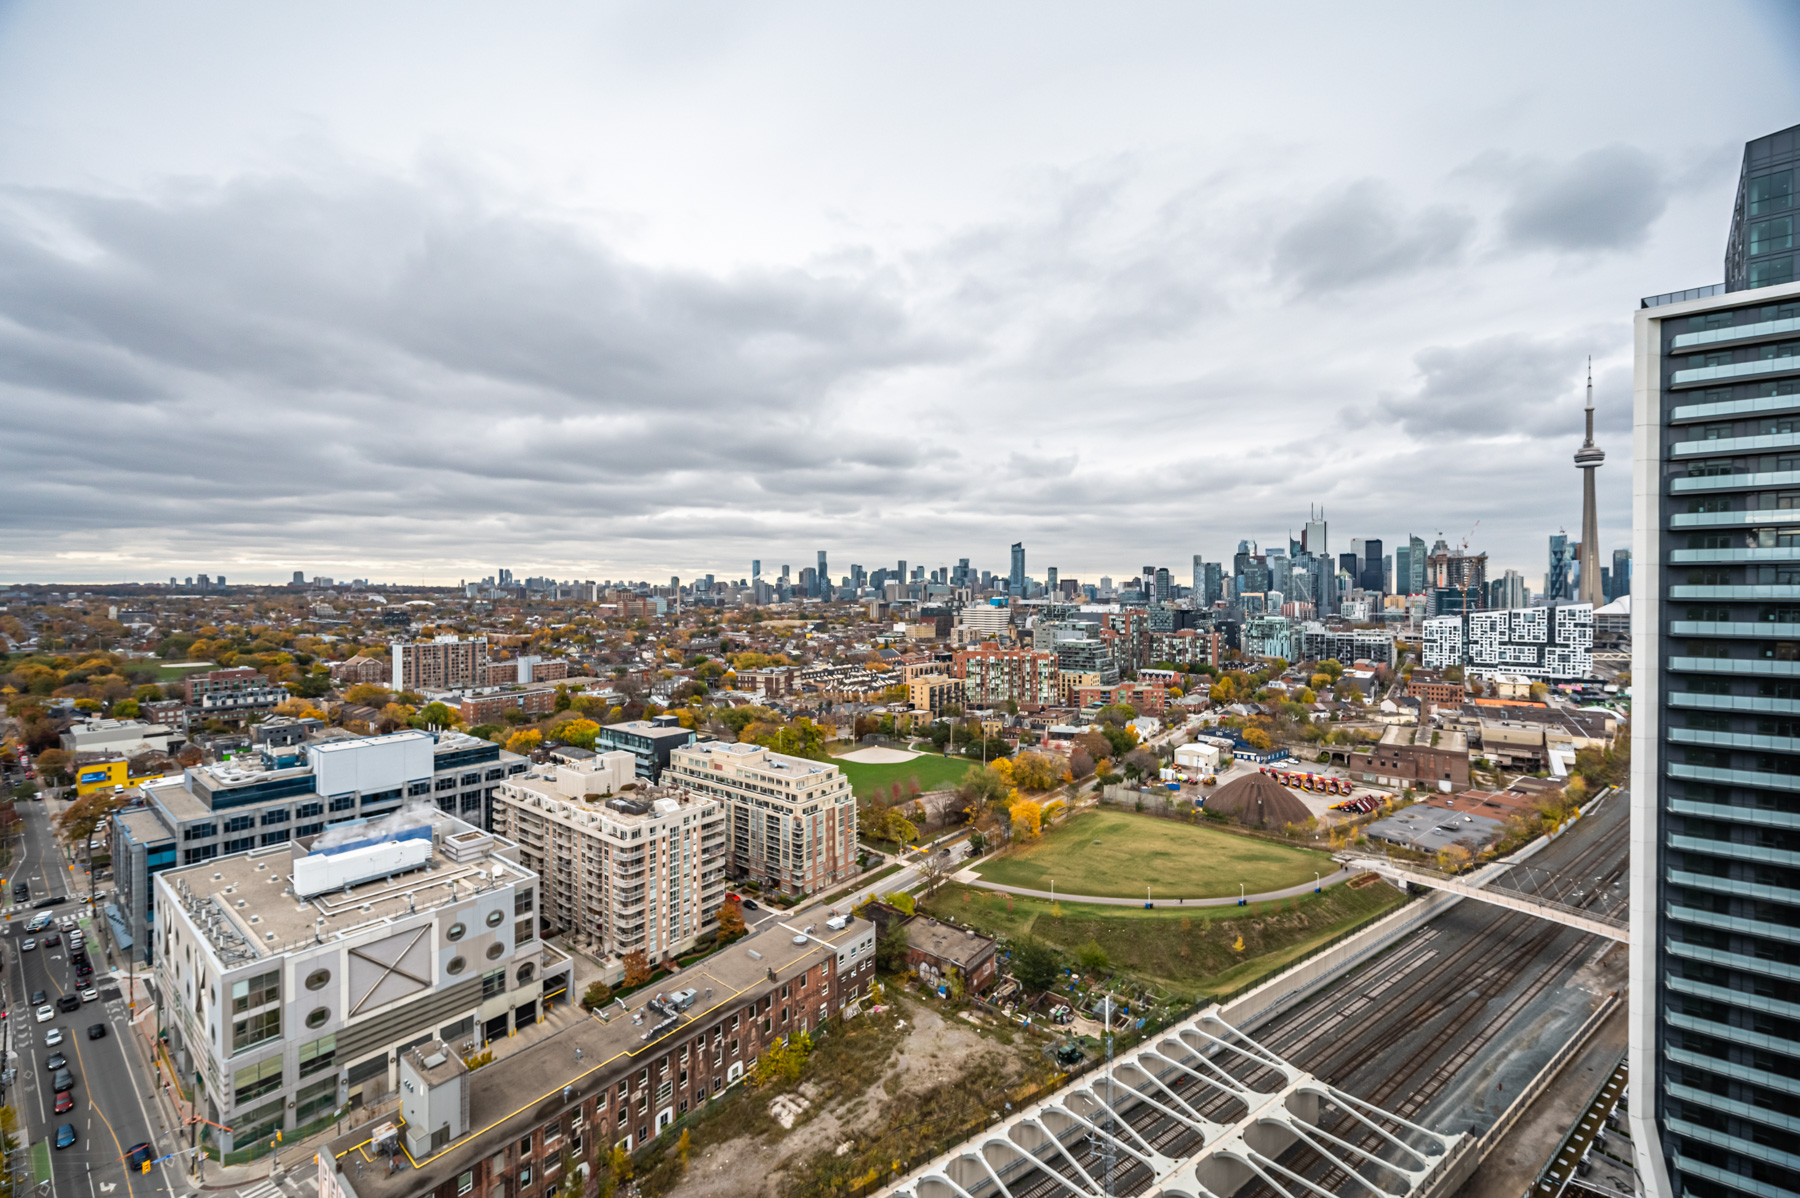 Balcony view of Toronto parks, railroads, buildings, bridges and CN Tower.